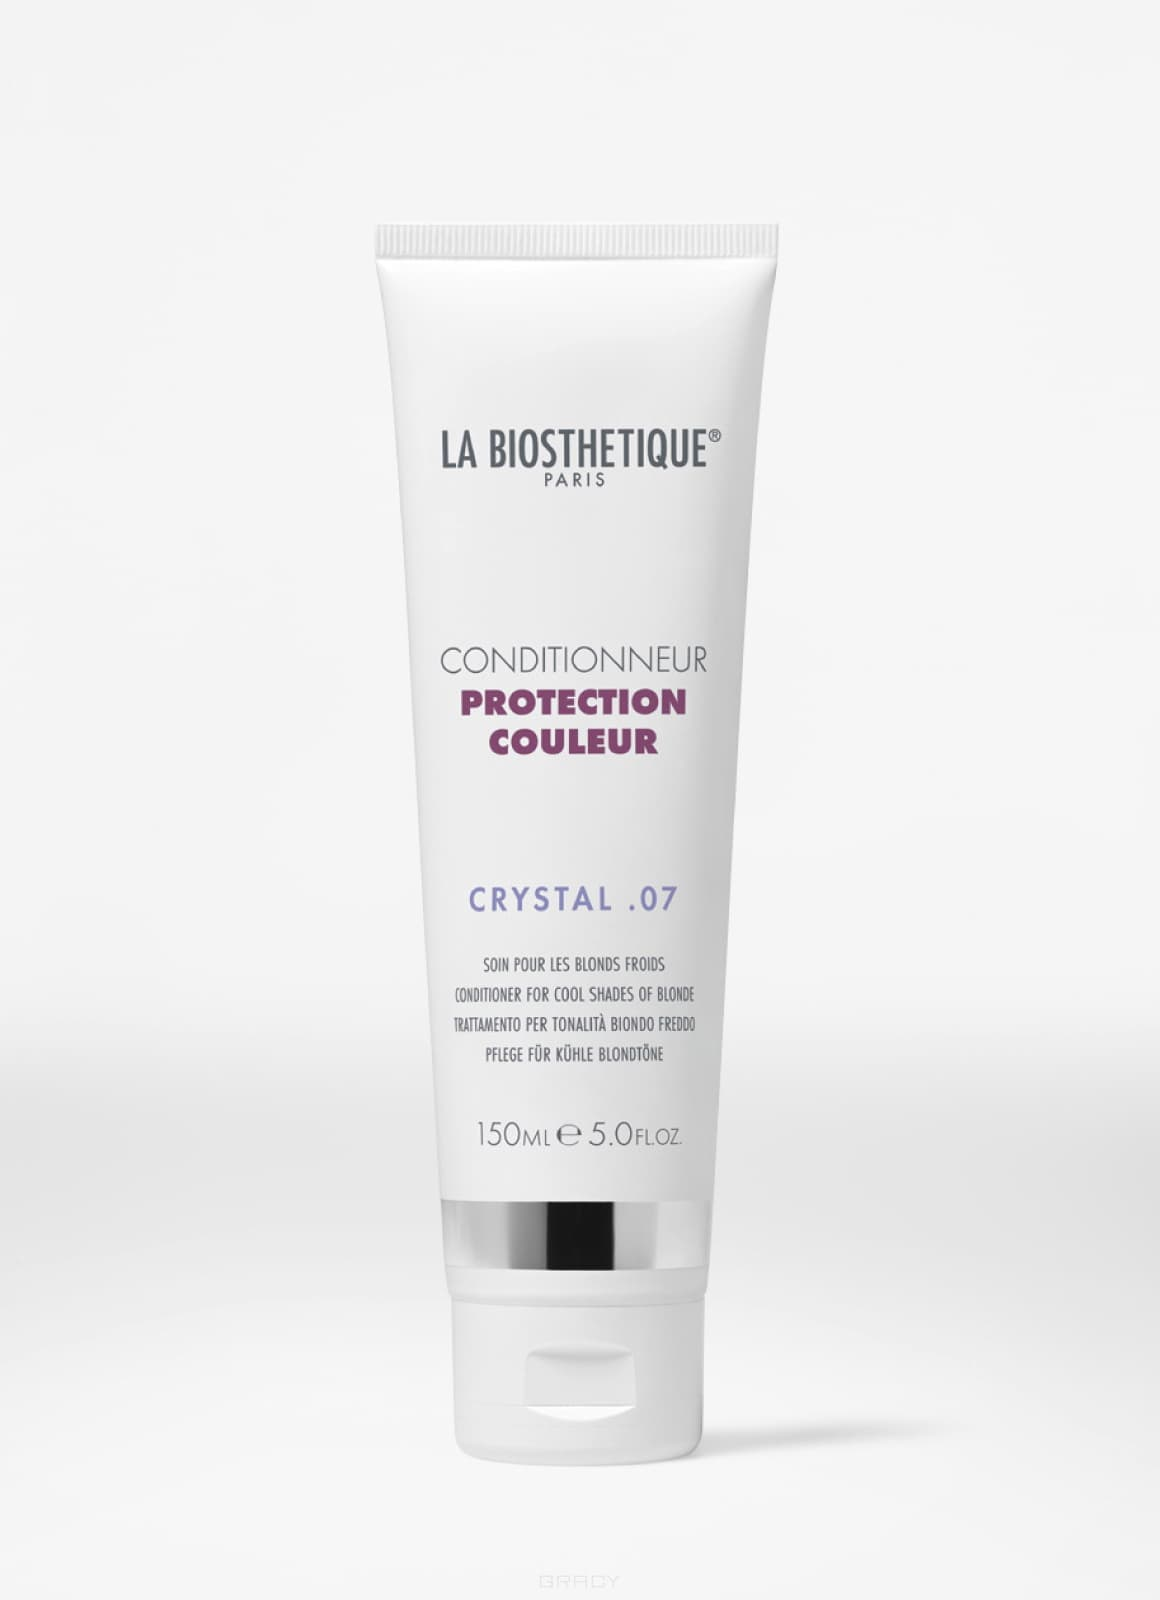 La Biosthetique, Тонирующий бальзам для окрашенных волос Conditrioner Protection Couleur, 150 мл (4 оттенка), 150 мл, Copper Red 45 insulated ring copper terminal connectors red silver 4 3mm 100pcs